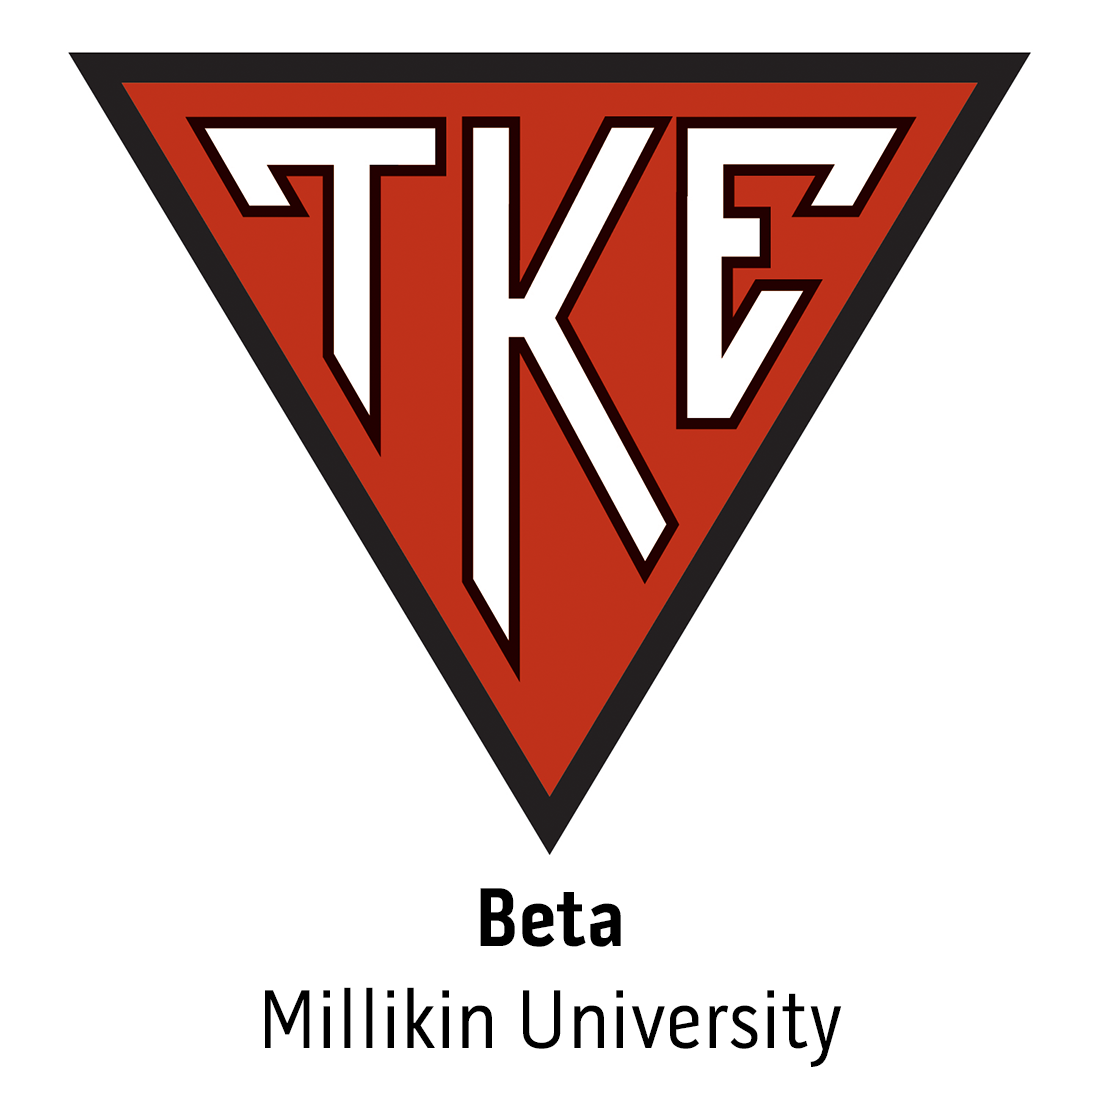 Beta C at Millikin University